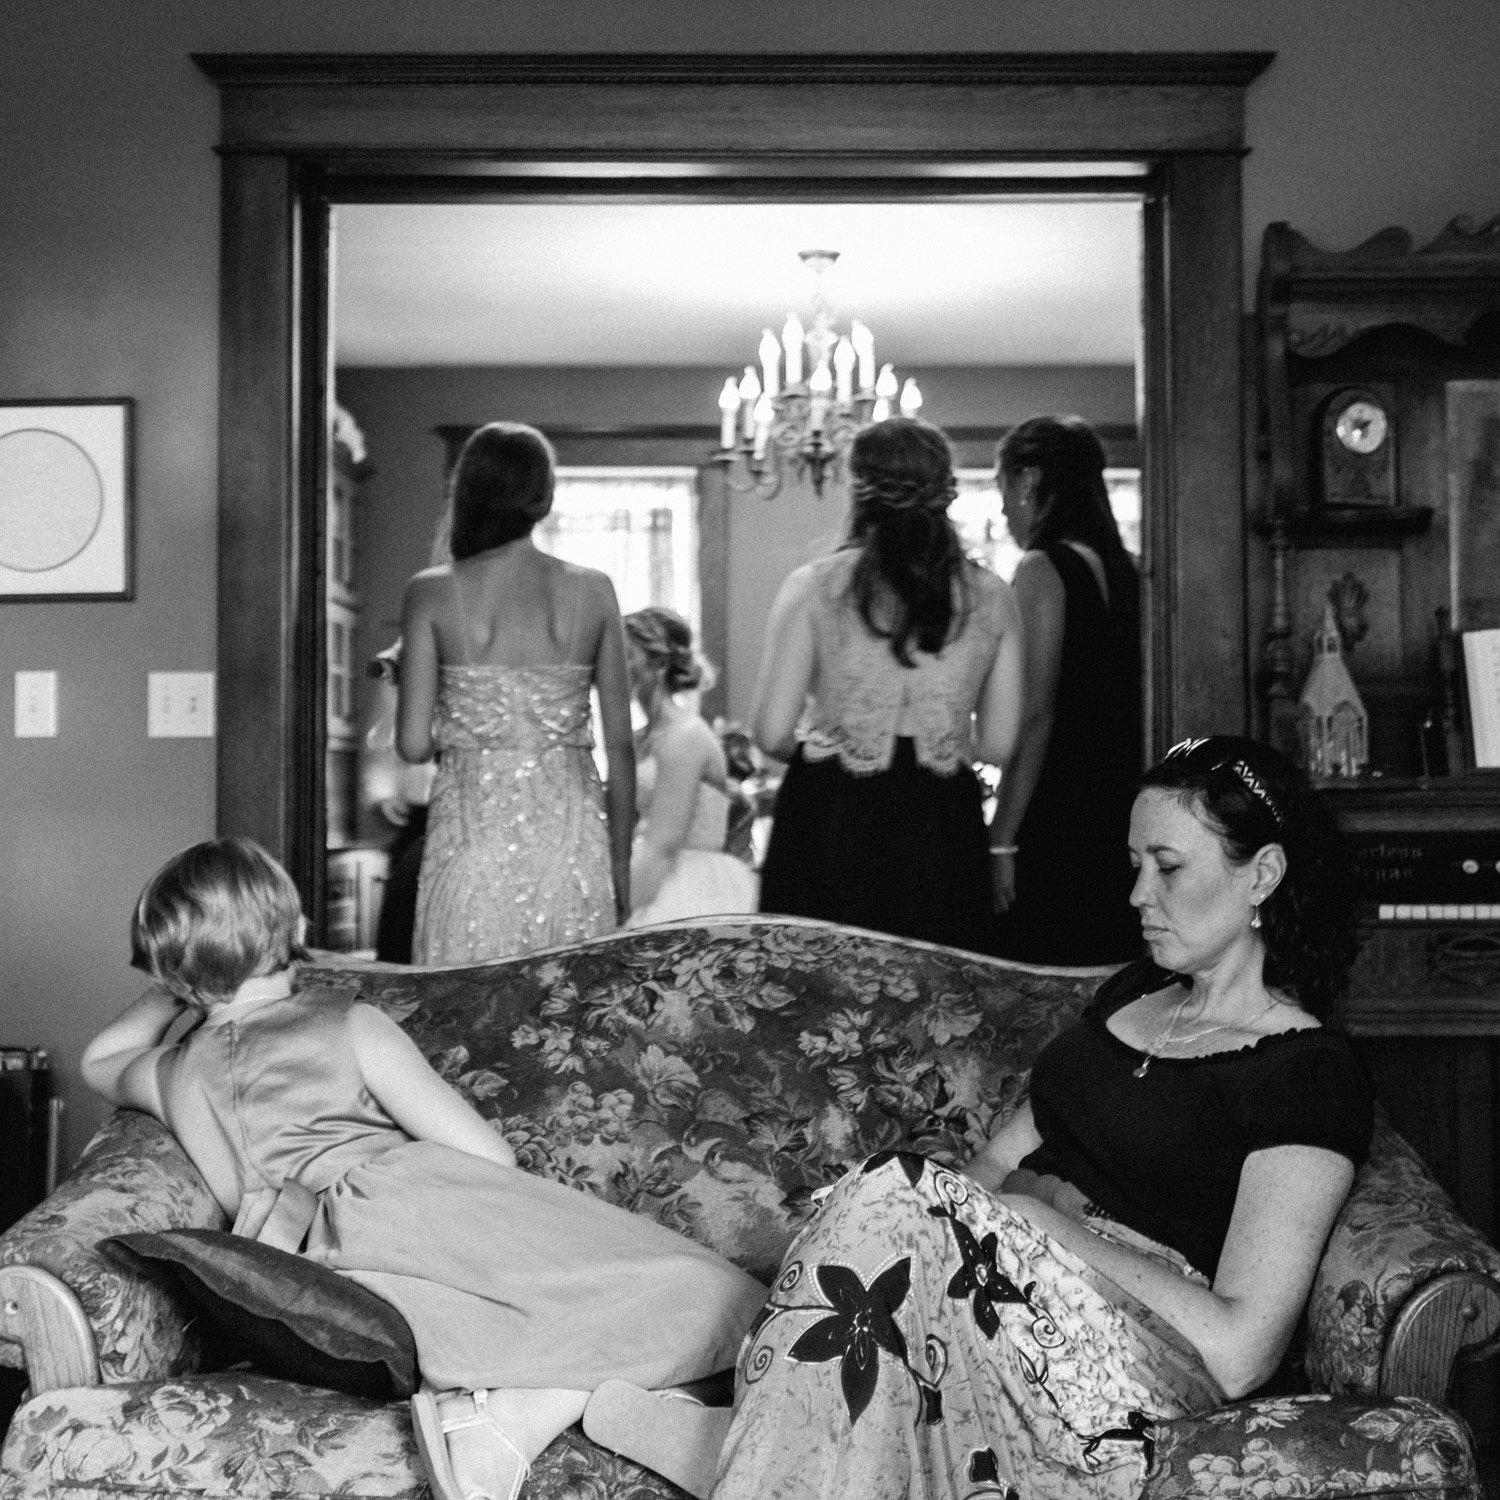 candid moment captured at Rustic Oaks by geneoh photography